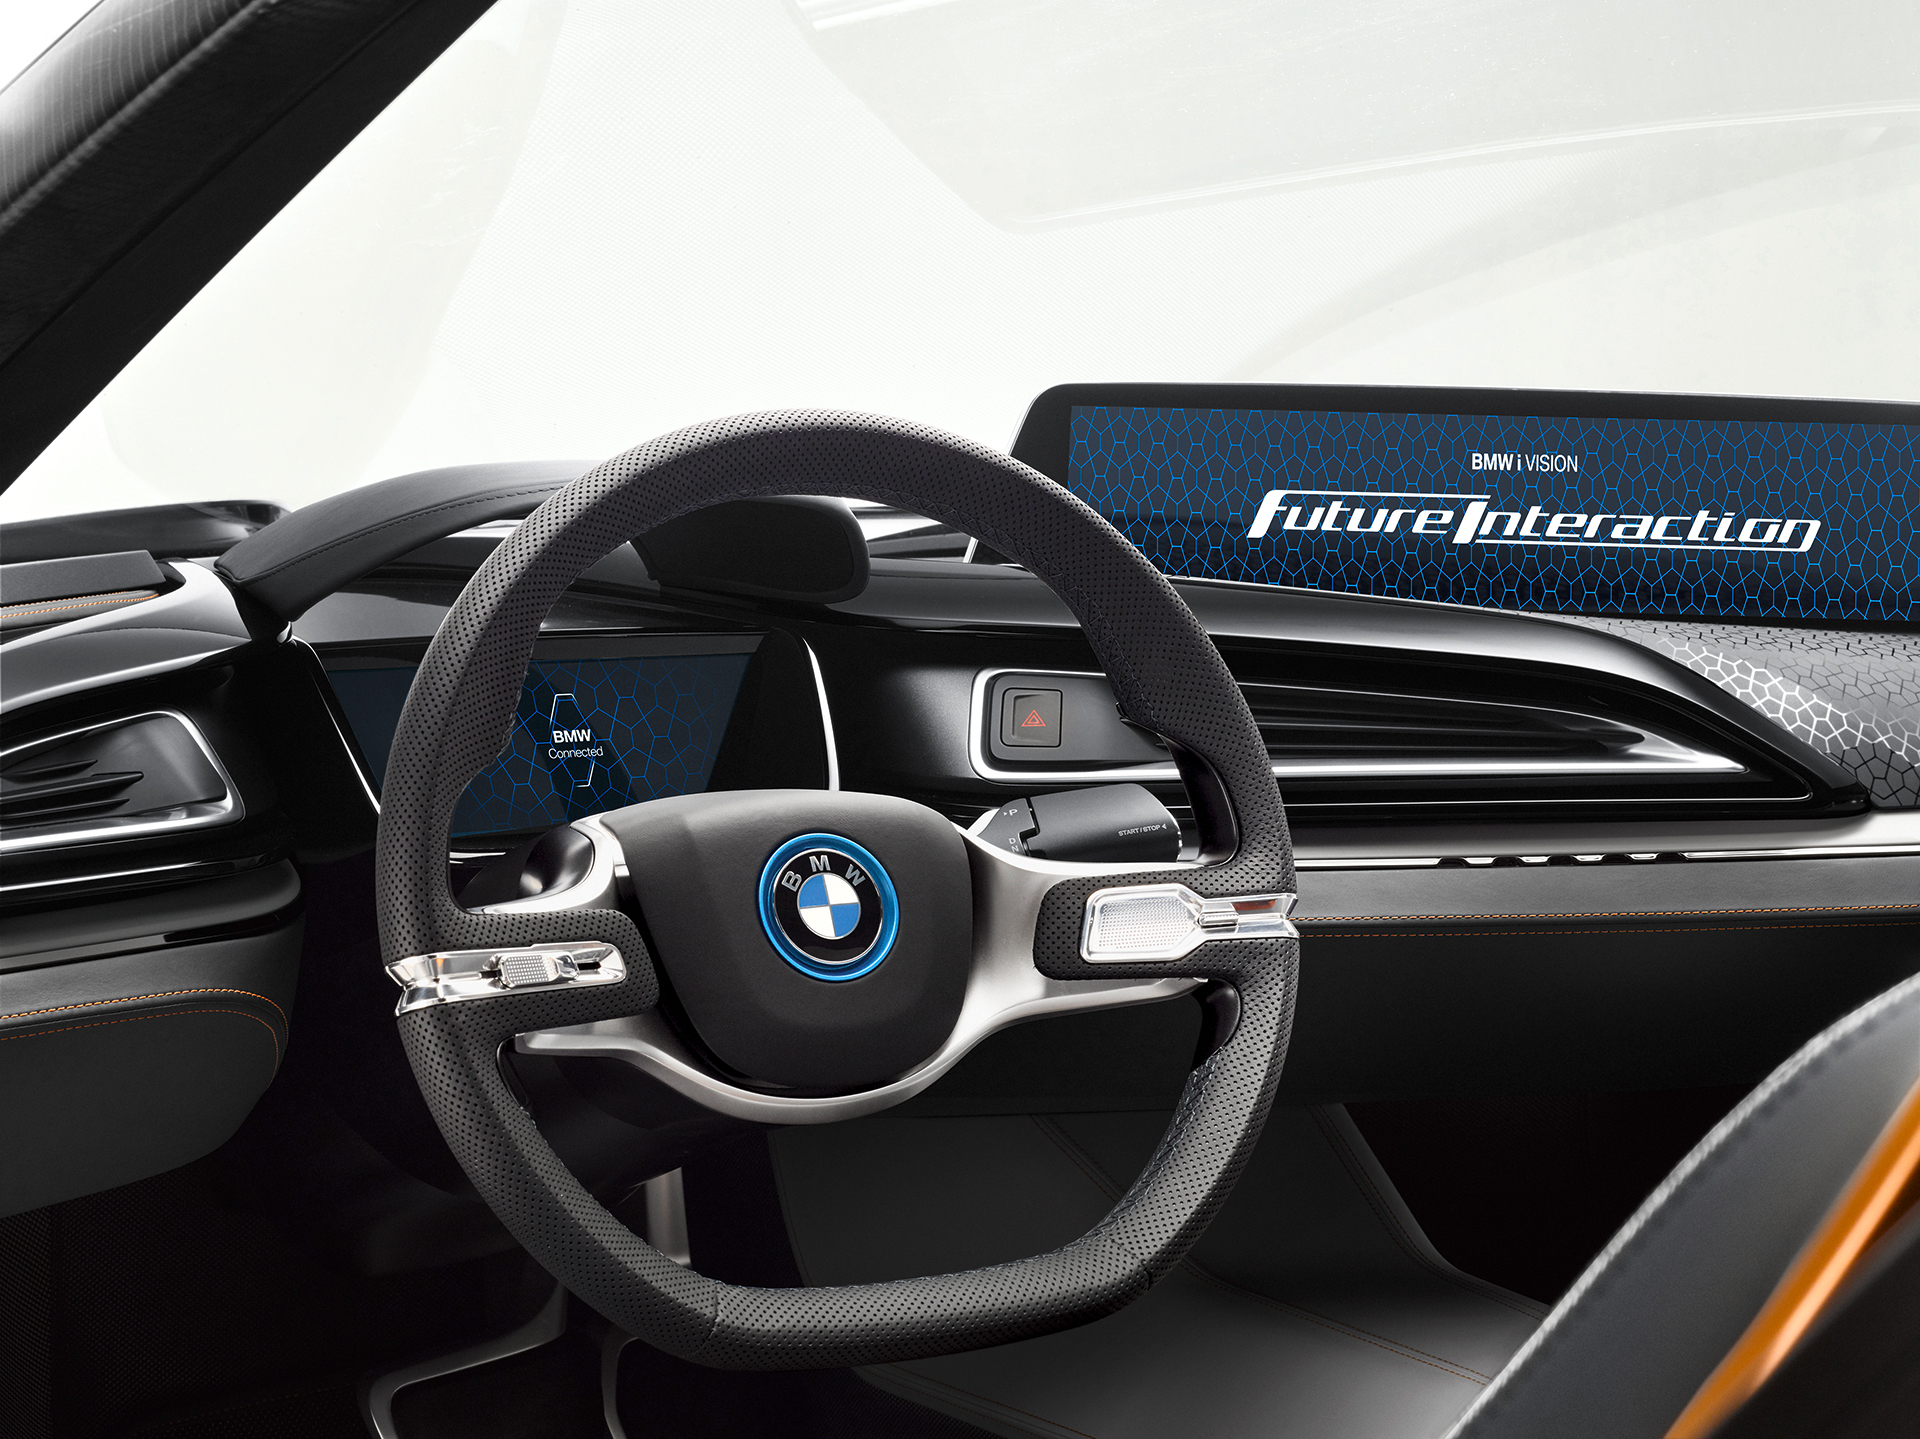 BMW i Vision Future Interaction – Concept Car - CES 2016 - drive wheel / volant